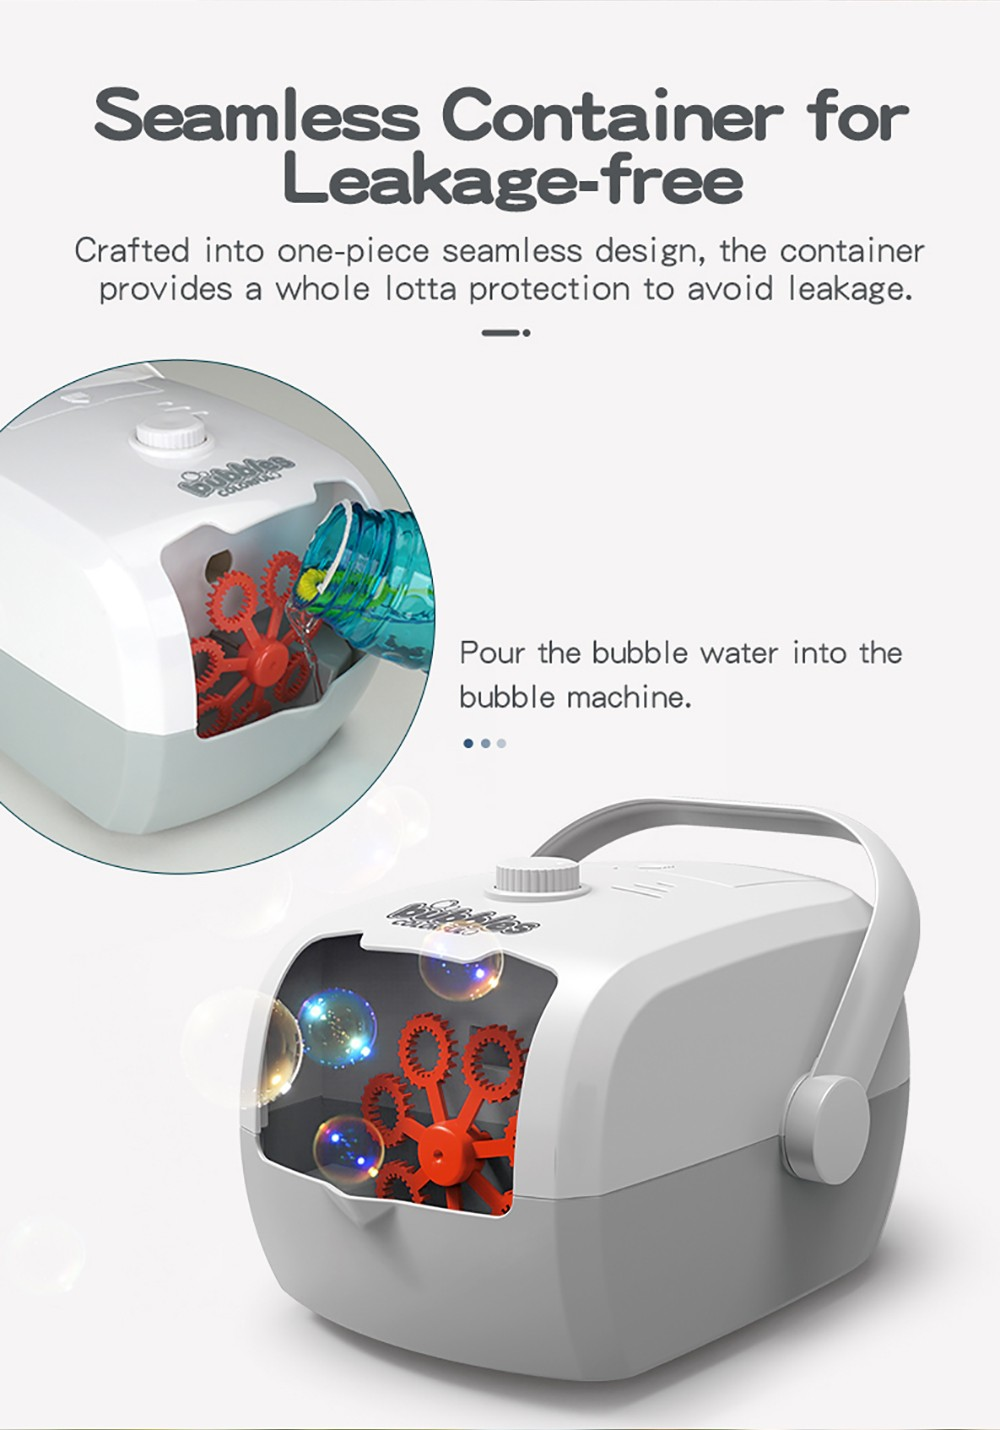 JJRC V08 Portable Rice Cooker Shape Children Bubble Machine Seamless Container for Leakage-free